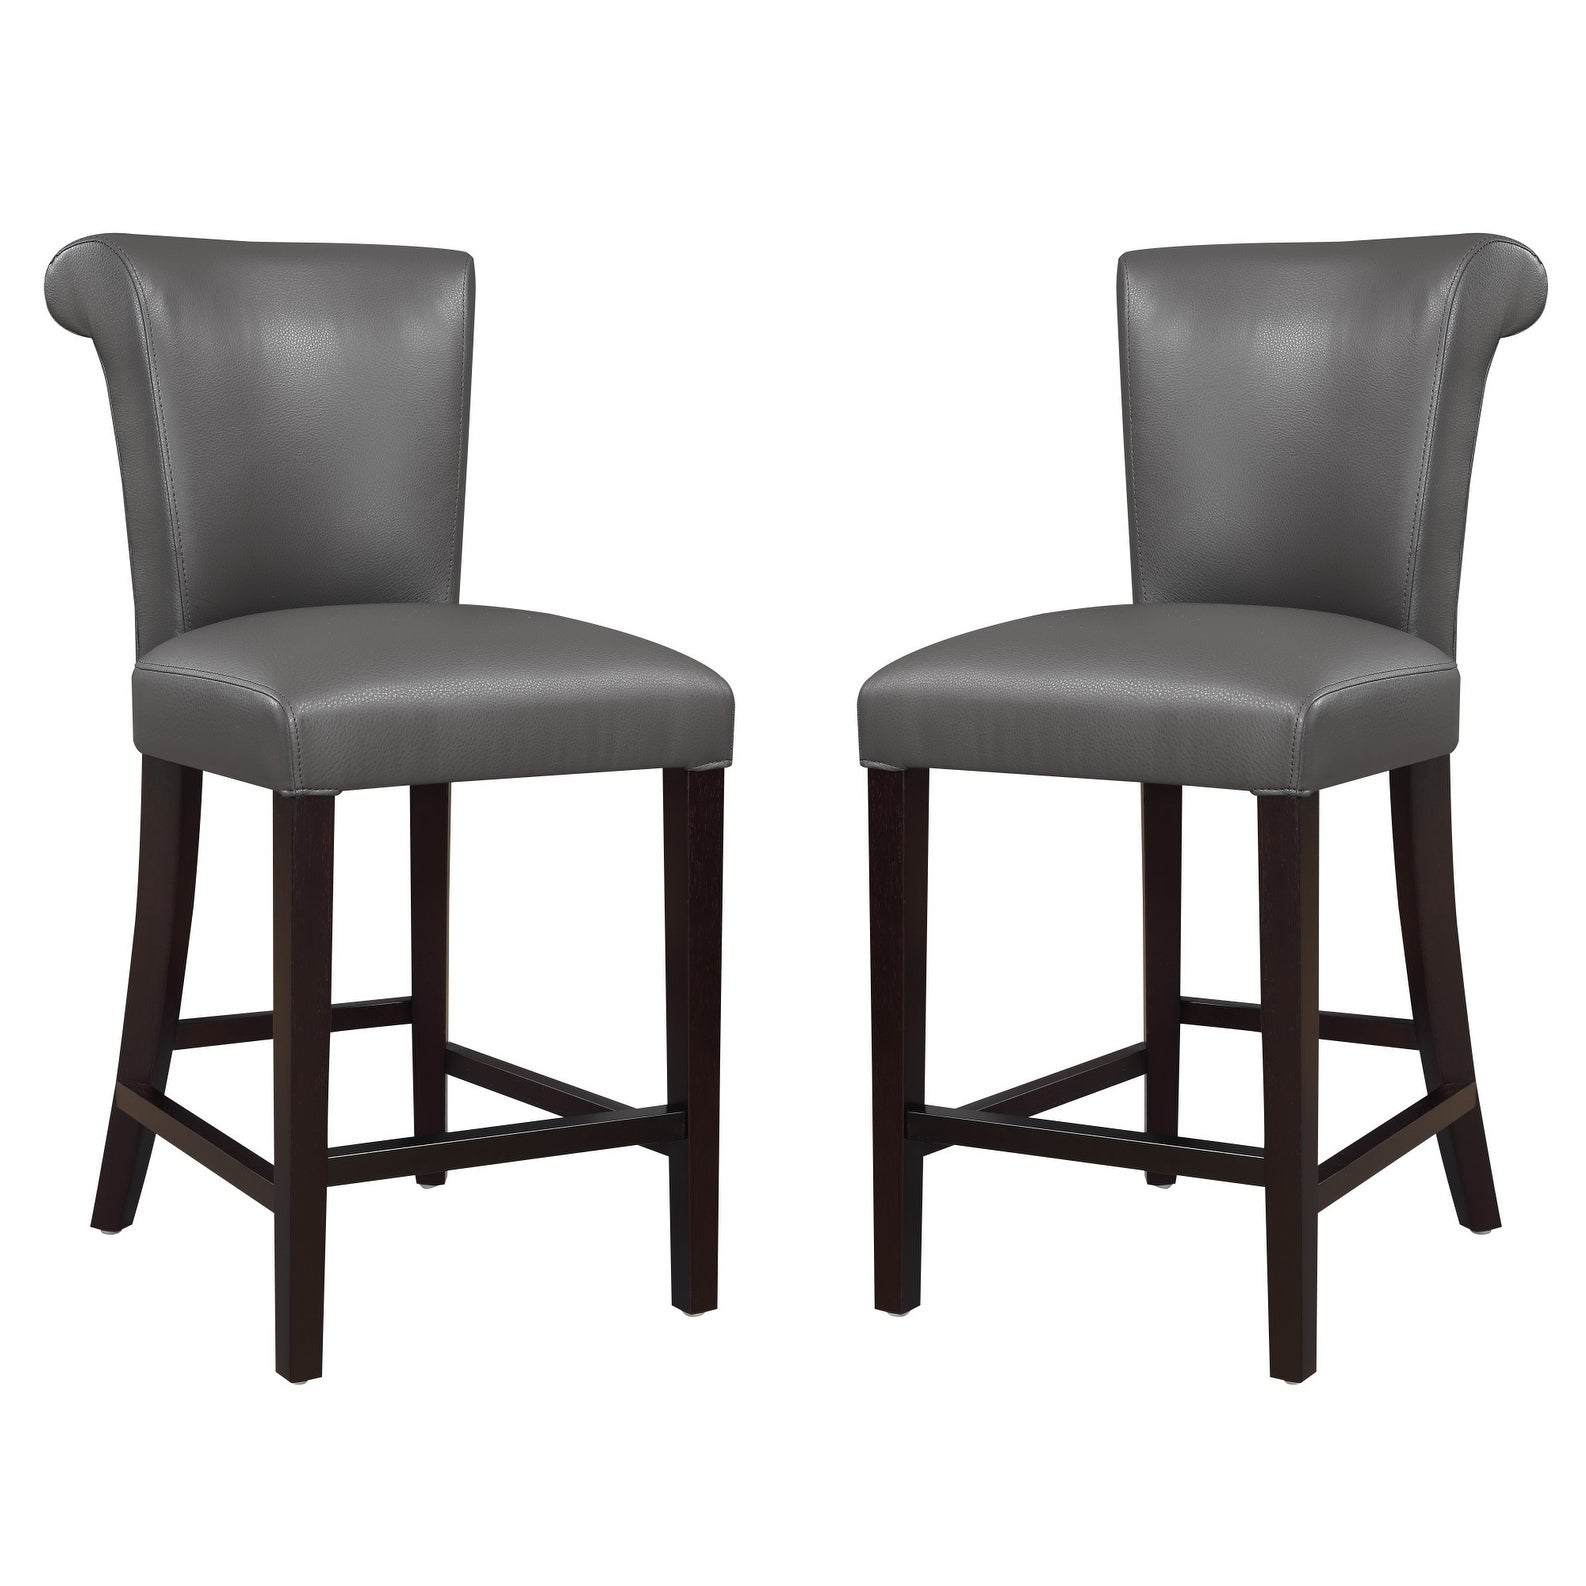 Shop Emerald Home Briar Iii Gunmetal Gray 24 Bar Stool With Faux